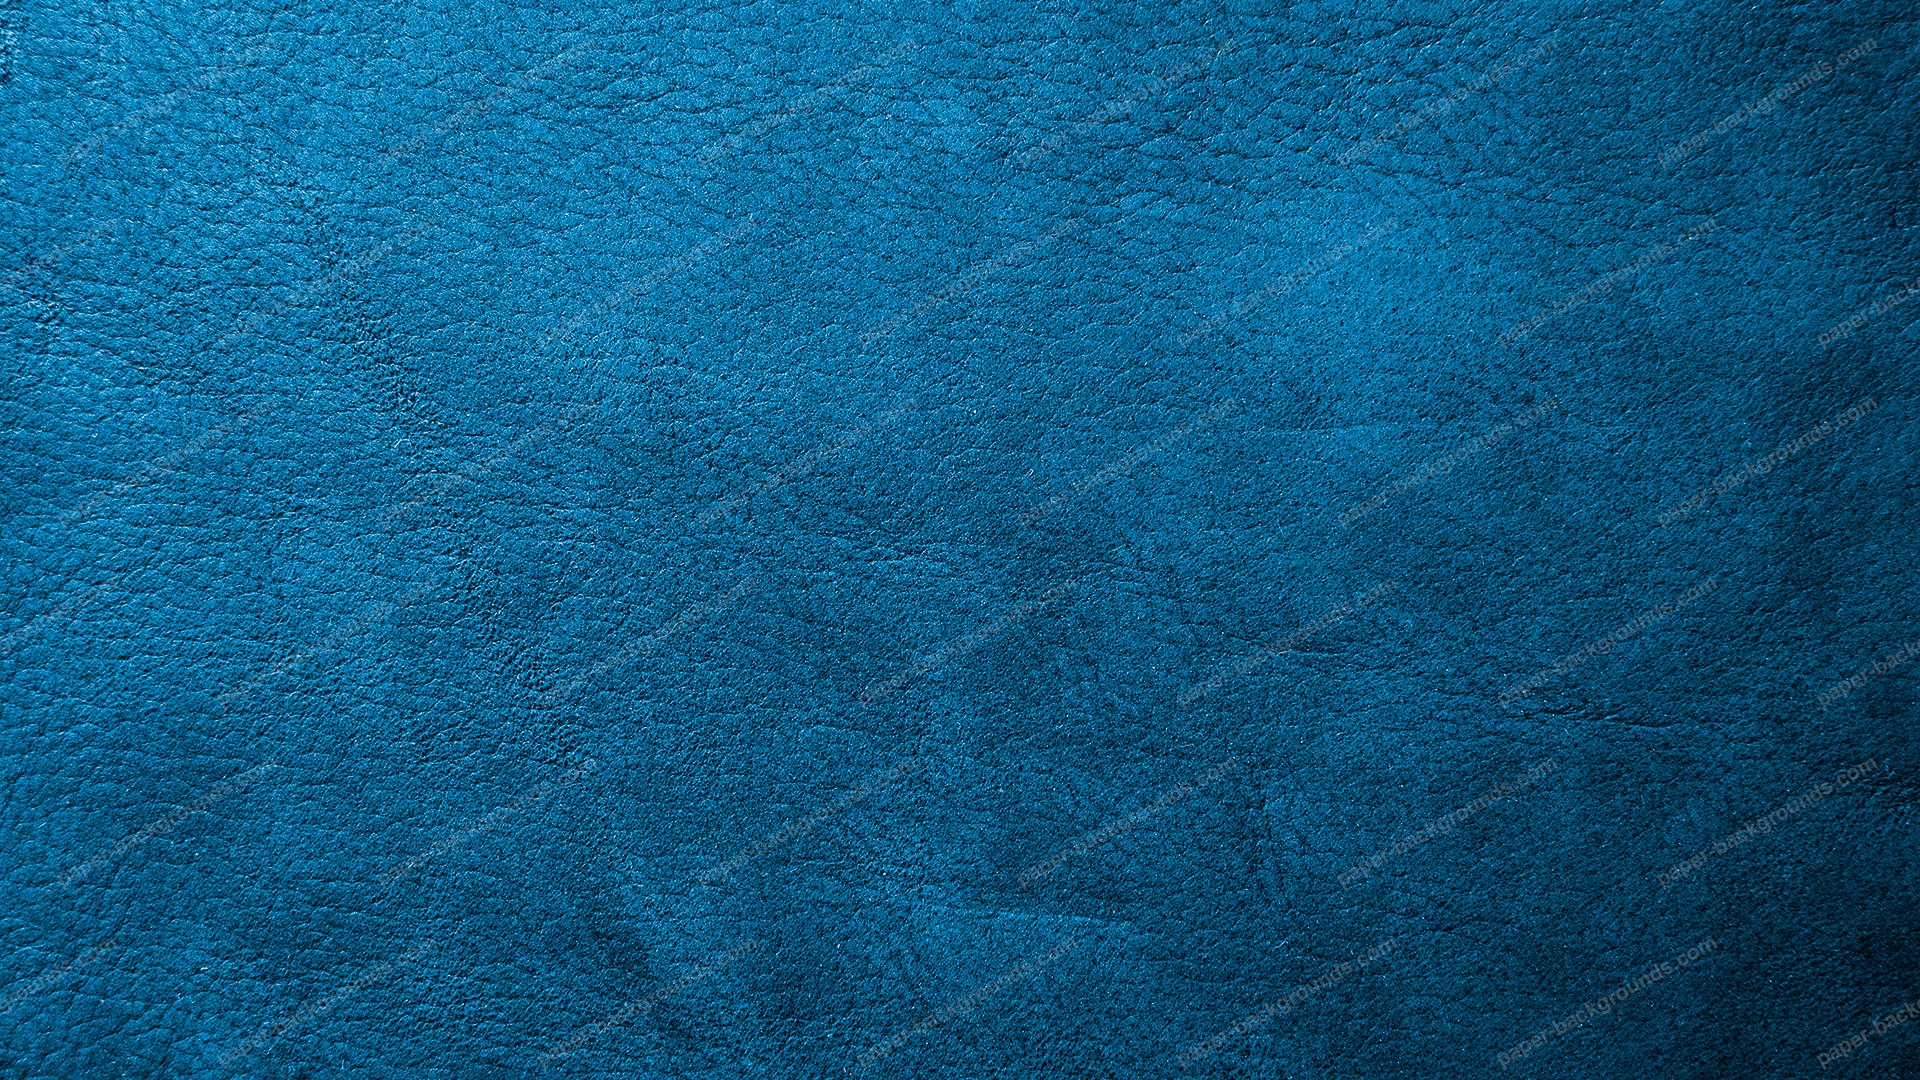 Blue Leather Texture Background HD 1920 x 1080p